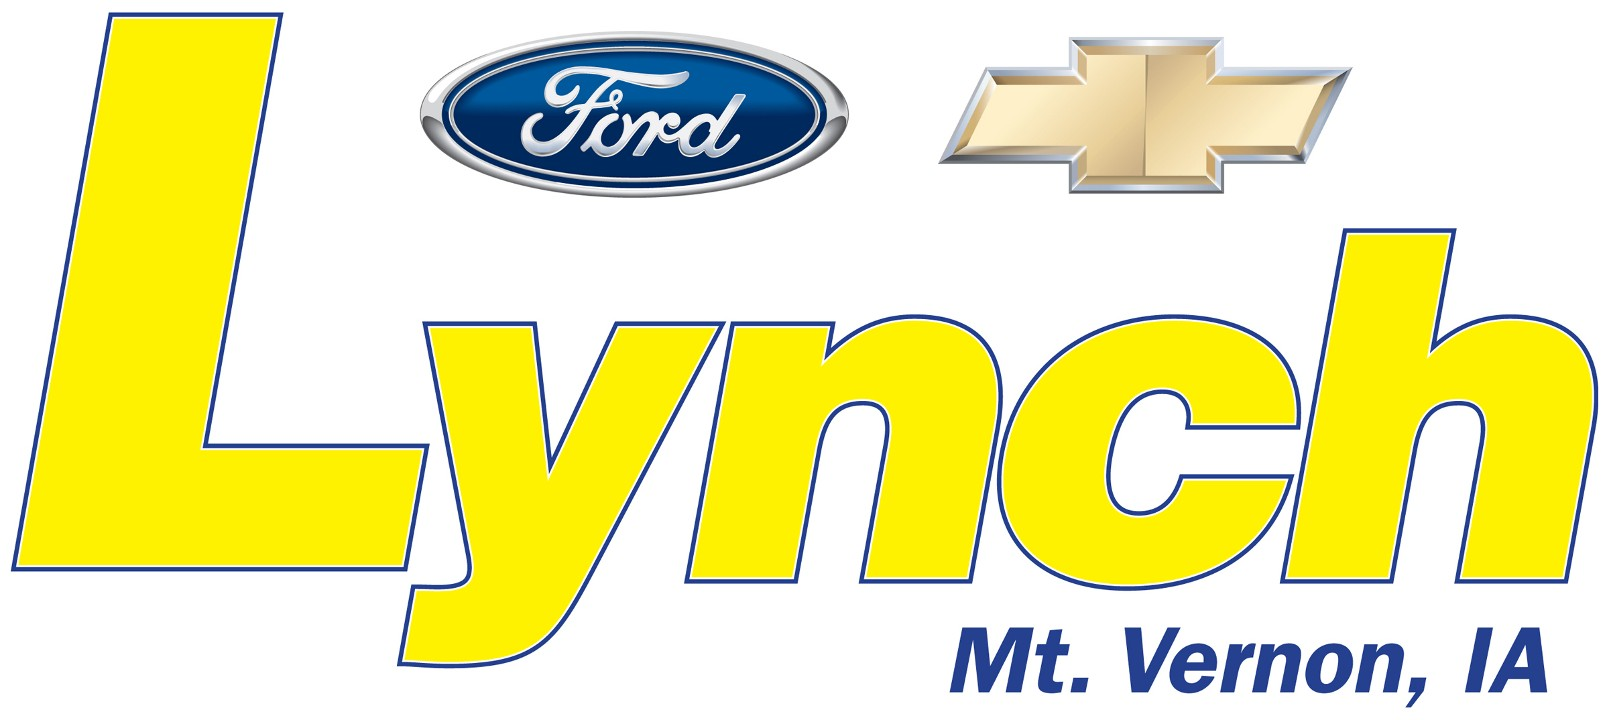 Lynch Ford